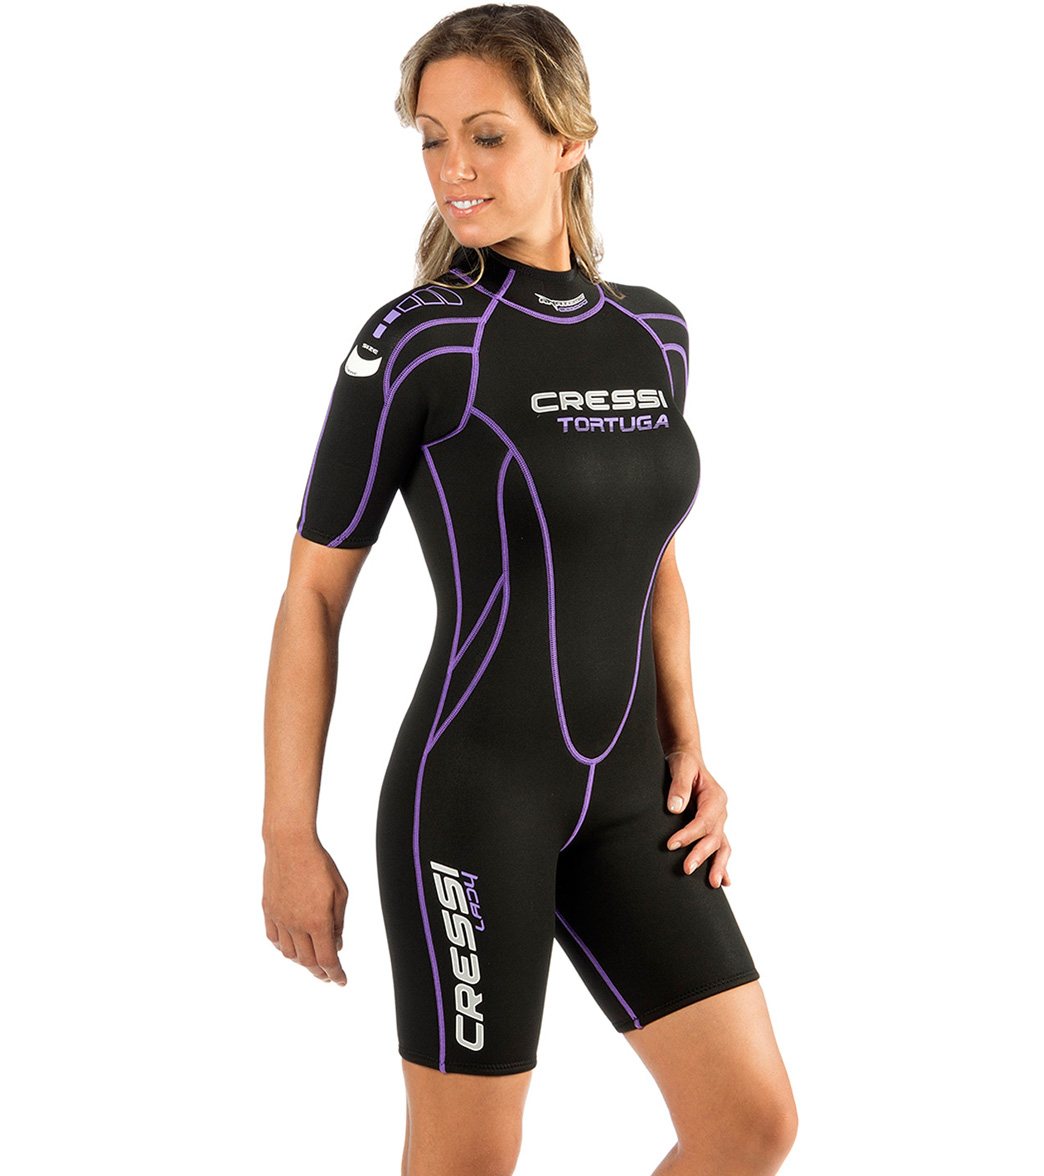 Cressi Women s 2.5mm Tortuga Shorty Wetsuit at SwimOutlet.com ... 25615bb12